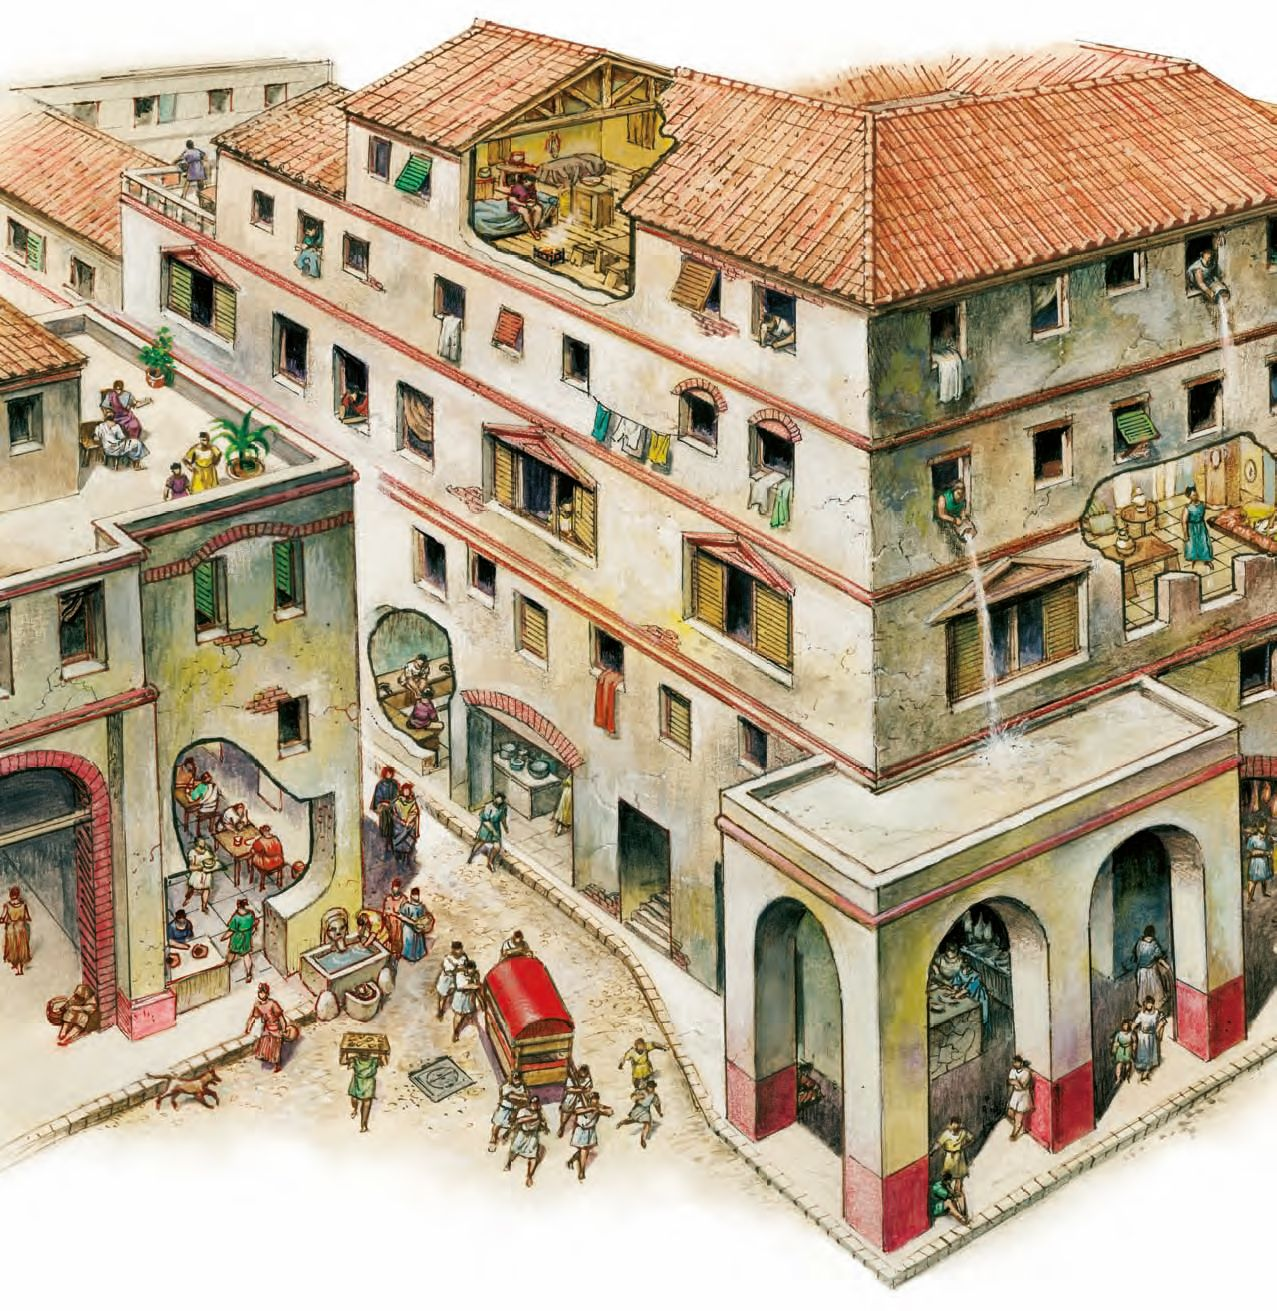 In Ancient Greek And Roman Cities Whole Blocks Of Housing Were Built Up To Five Or Six Stories High Businesses Fronted The Streets Behind Which